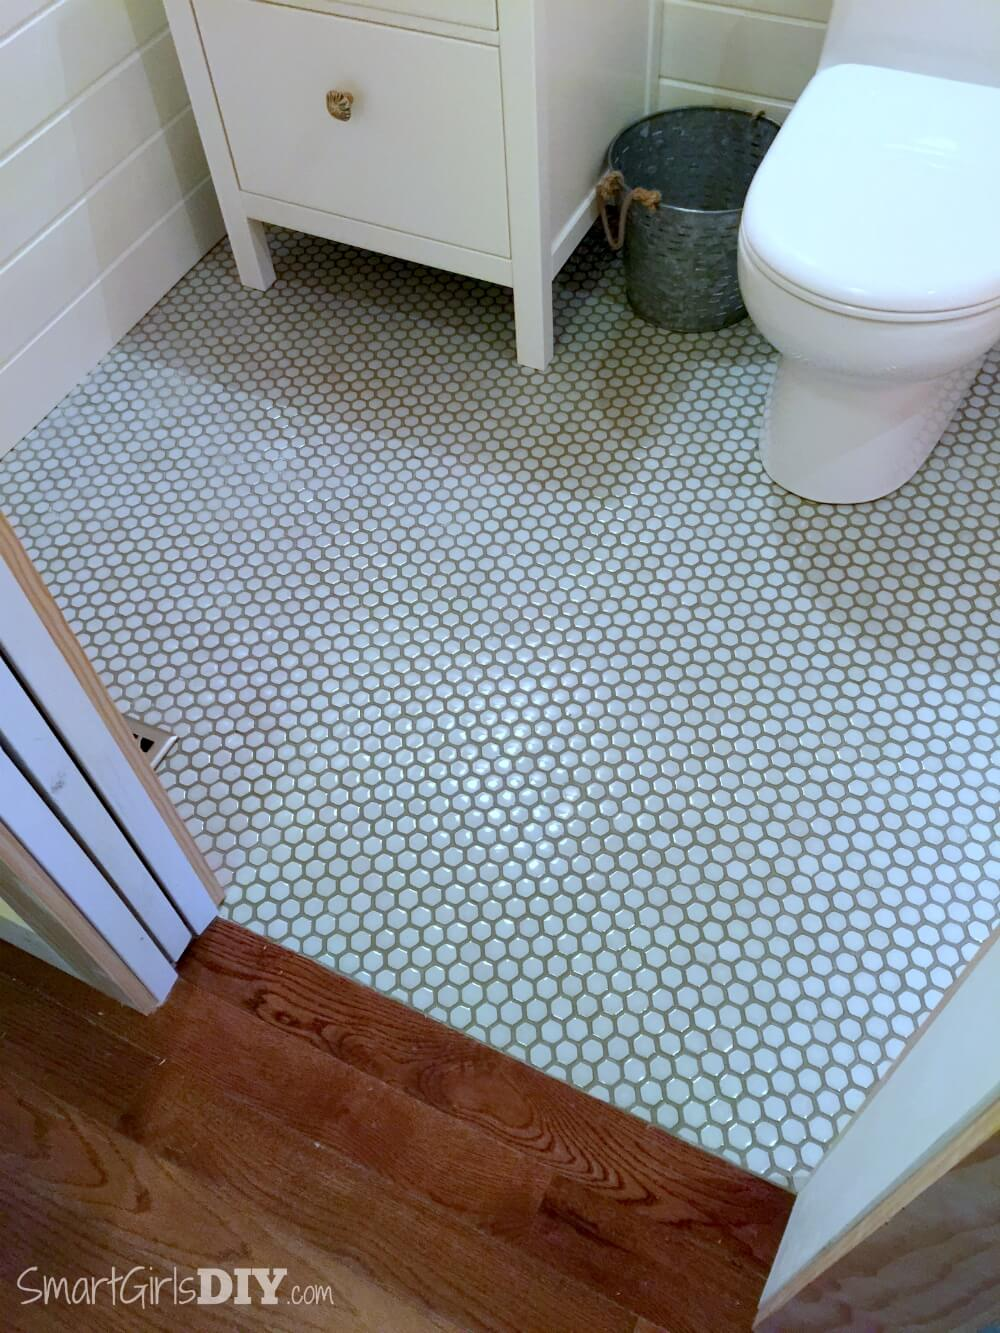 Guest bathroom 7 diy hex tile floor bathroom makeover hexagon floor tiles with painted grout lines transition to hardwood floor dailygadgetfo Choice Image